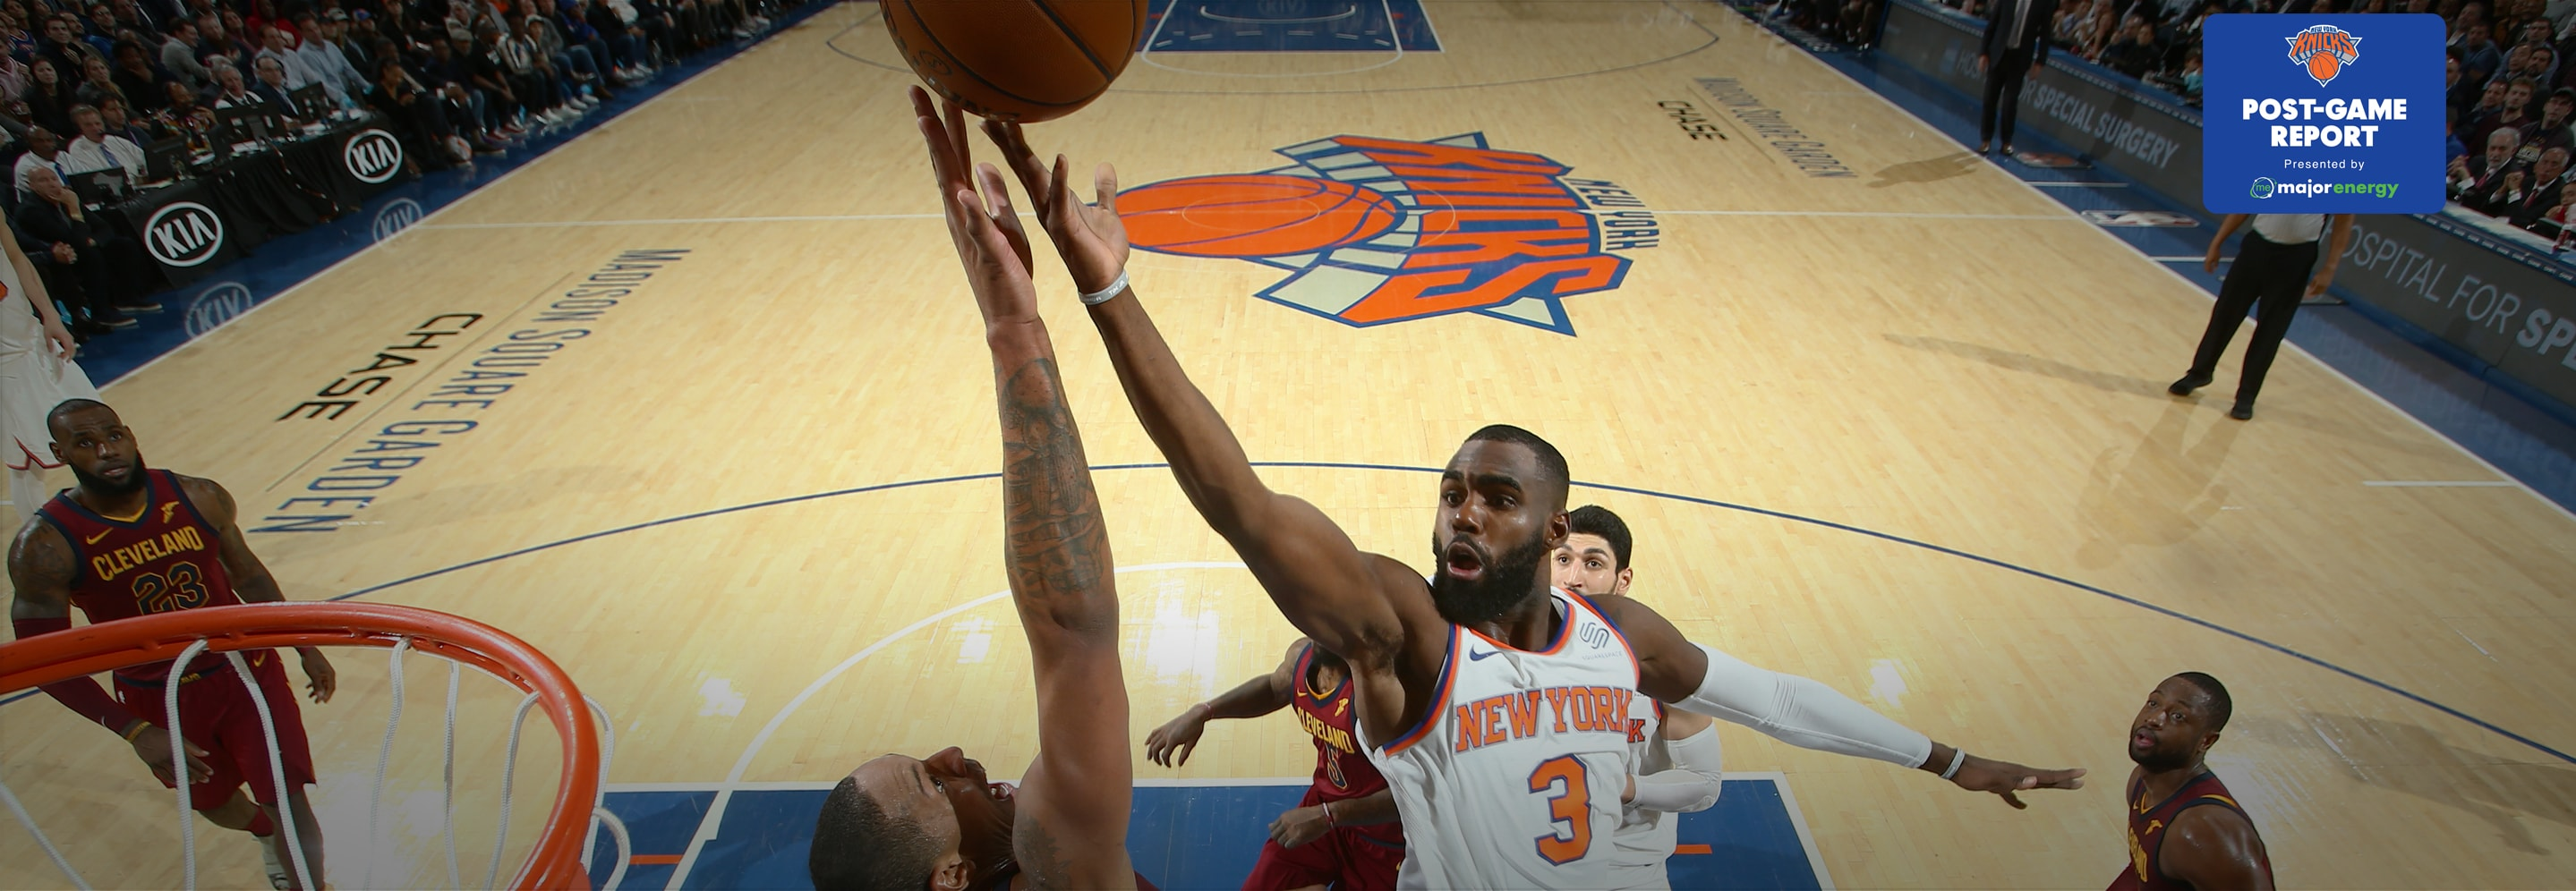 CLE 104 NYK 101: Hardaway Jr. Scores 28 in Narrow Defeat at MSG